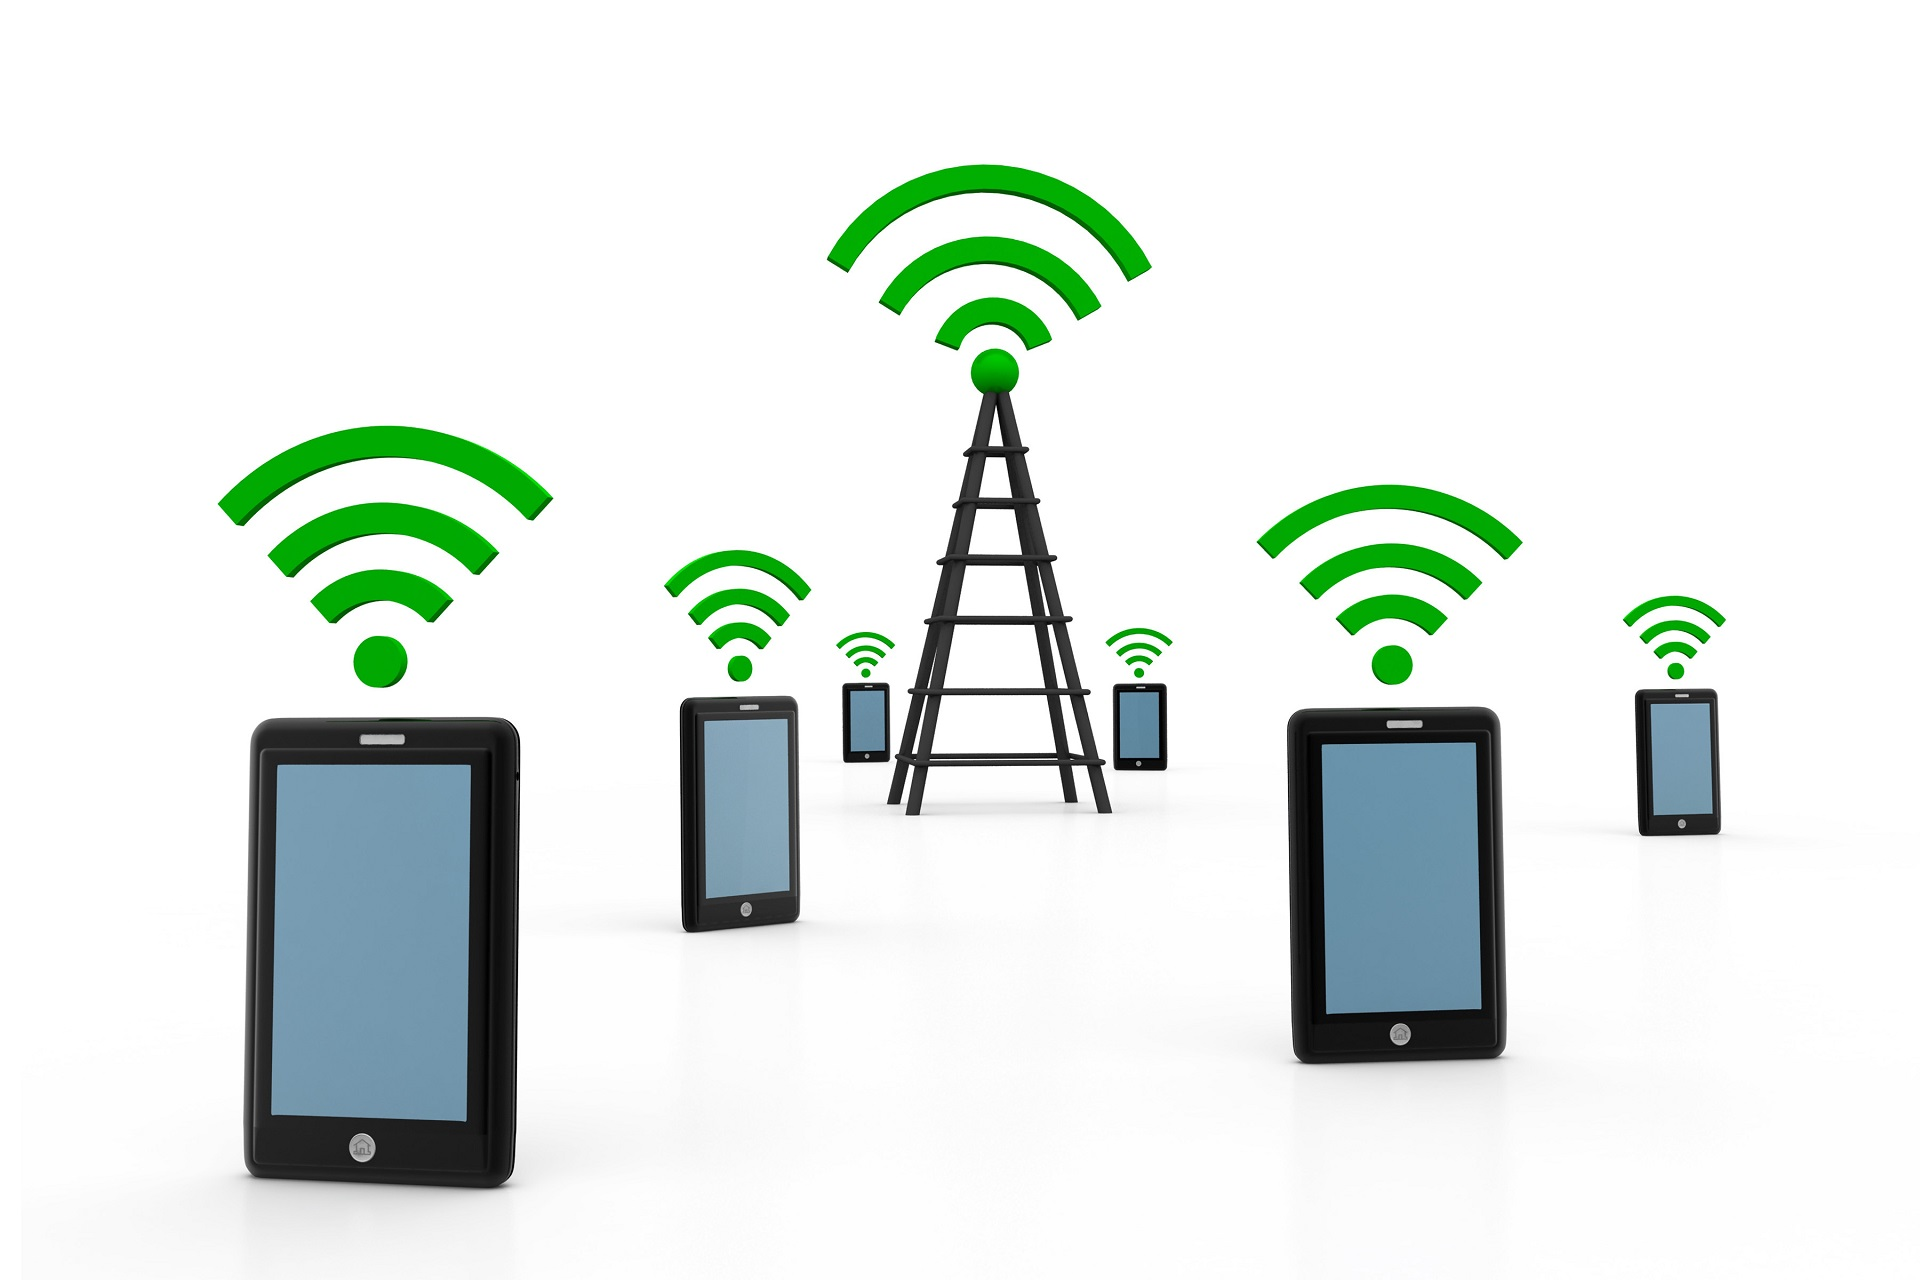 Cellular Devices and Tower Transmitting Signal